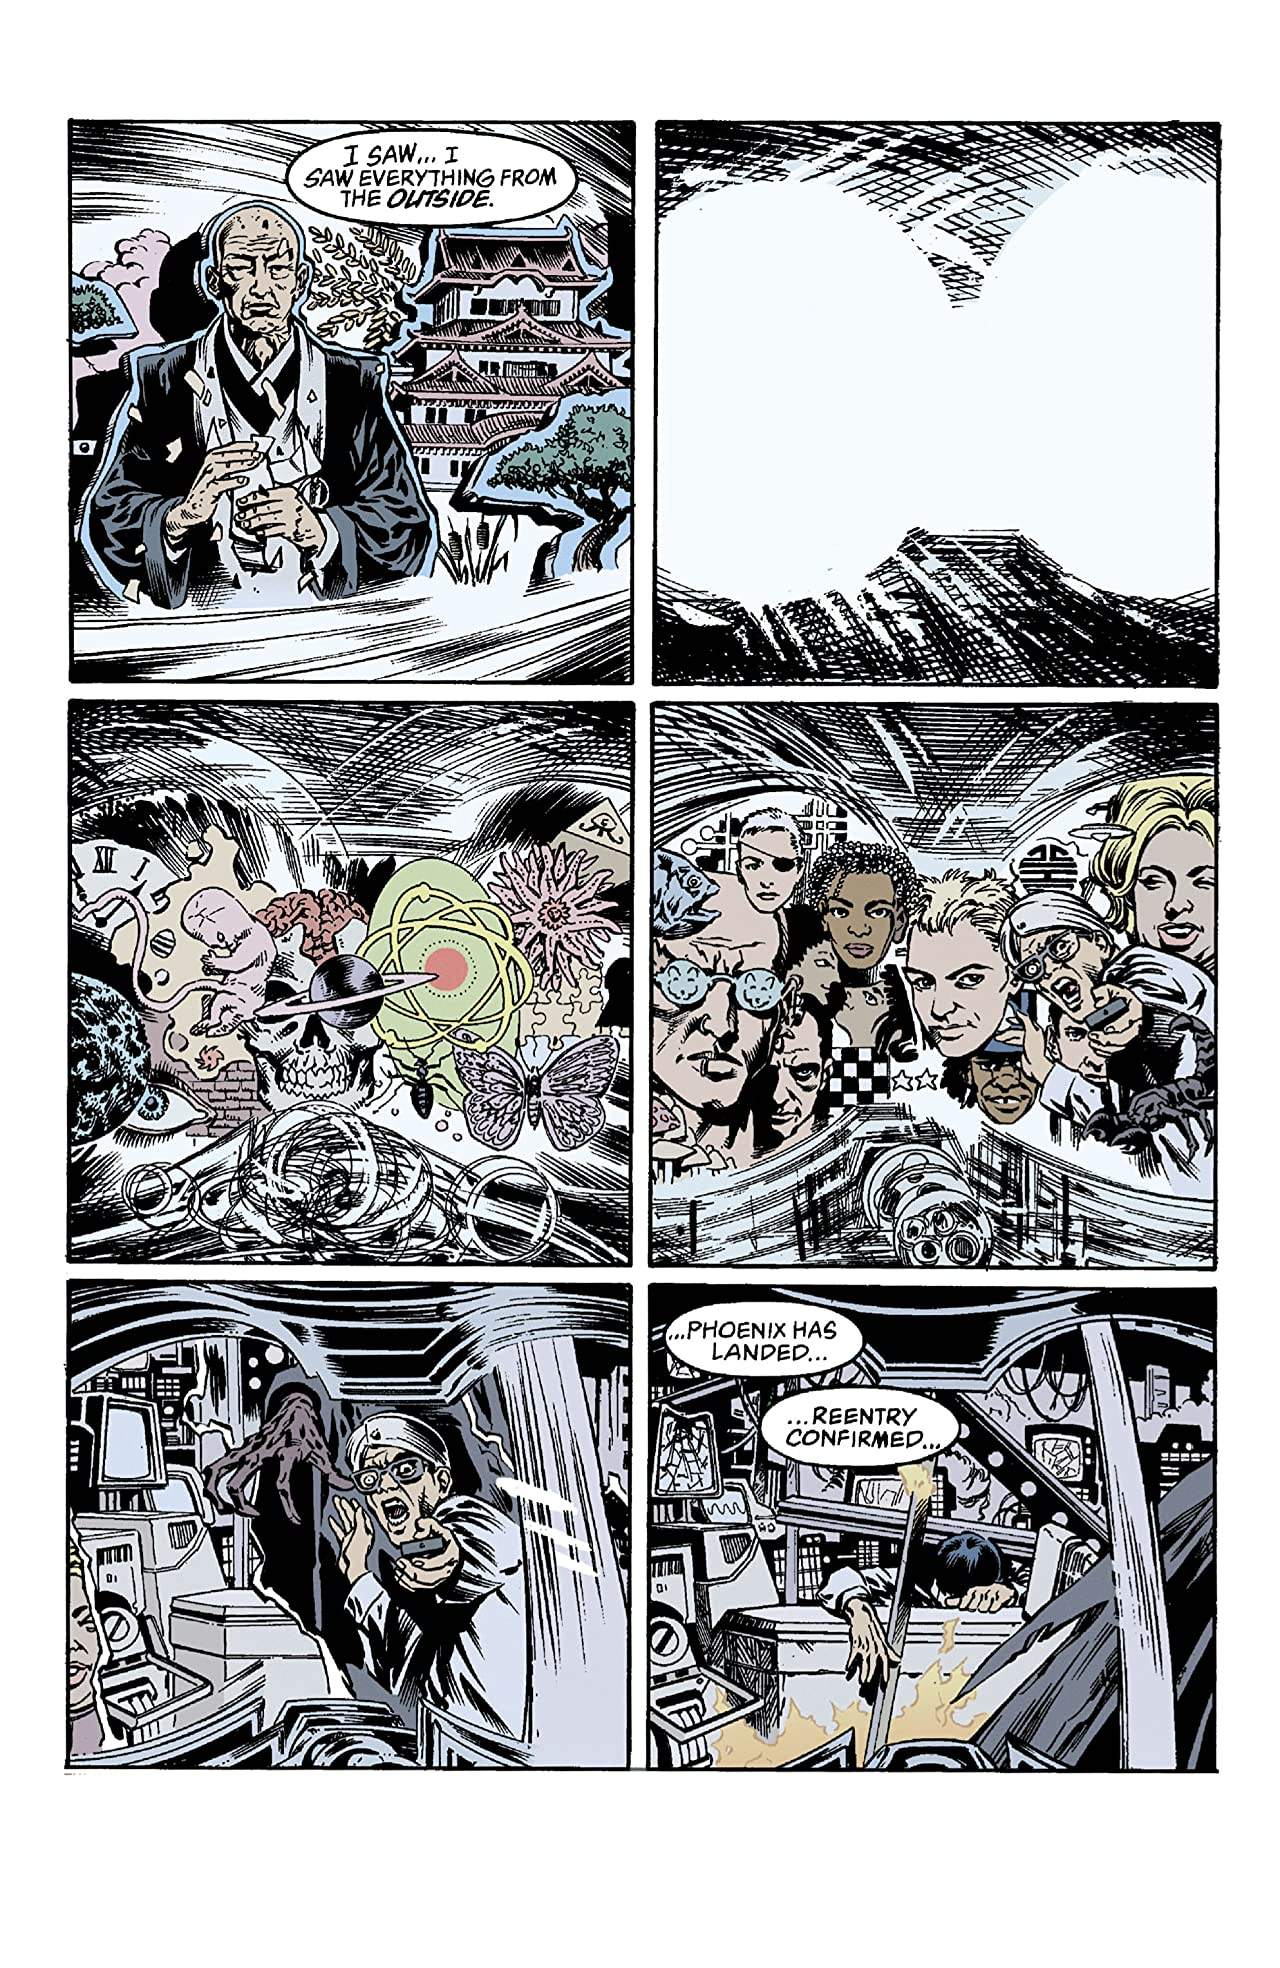 The Invisibles Vol. 2 #21